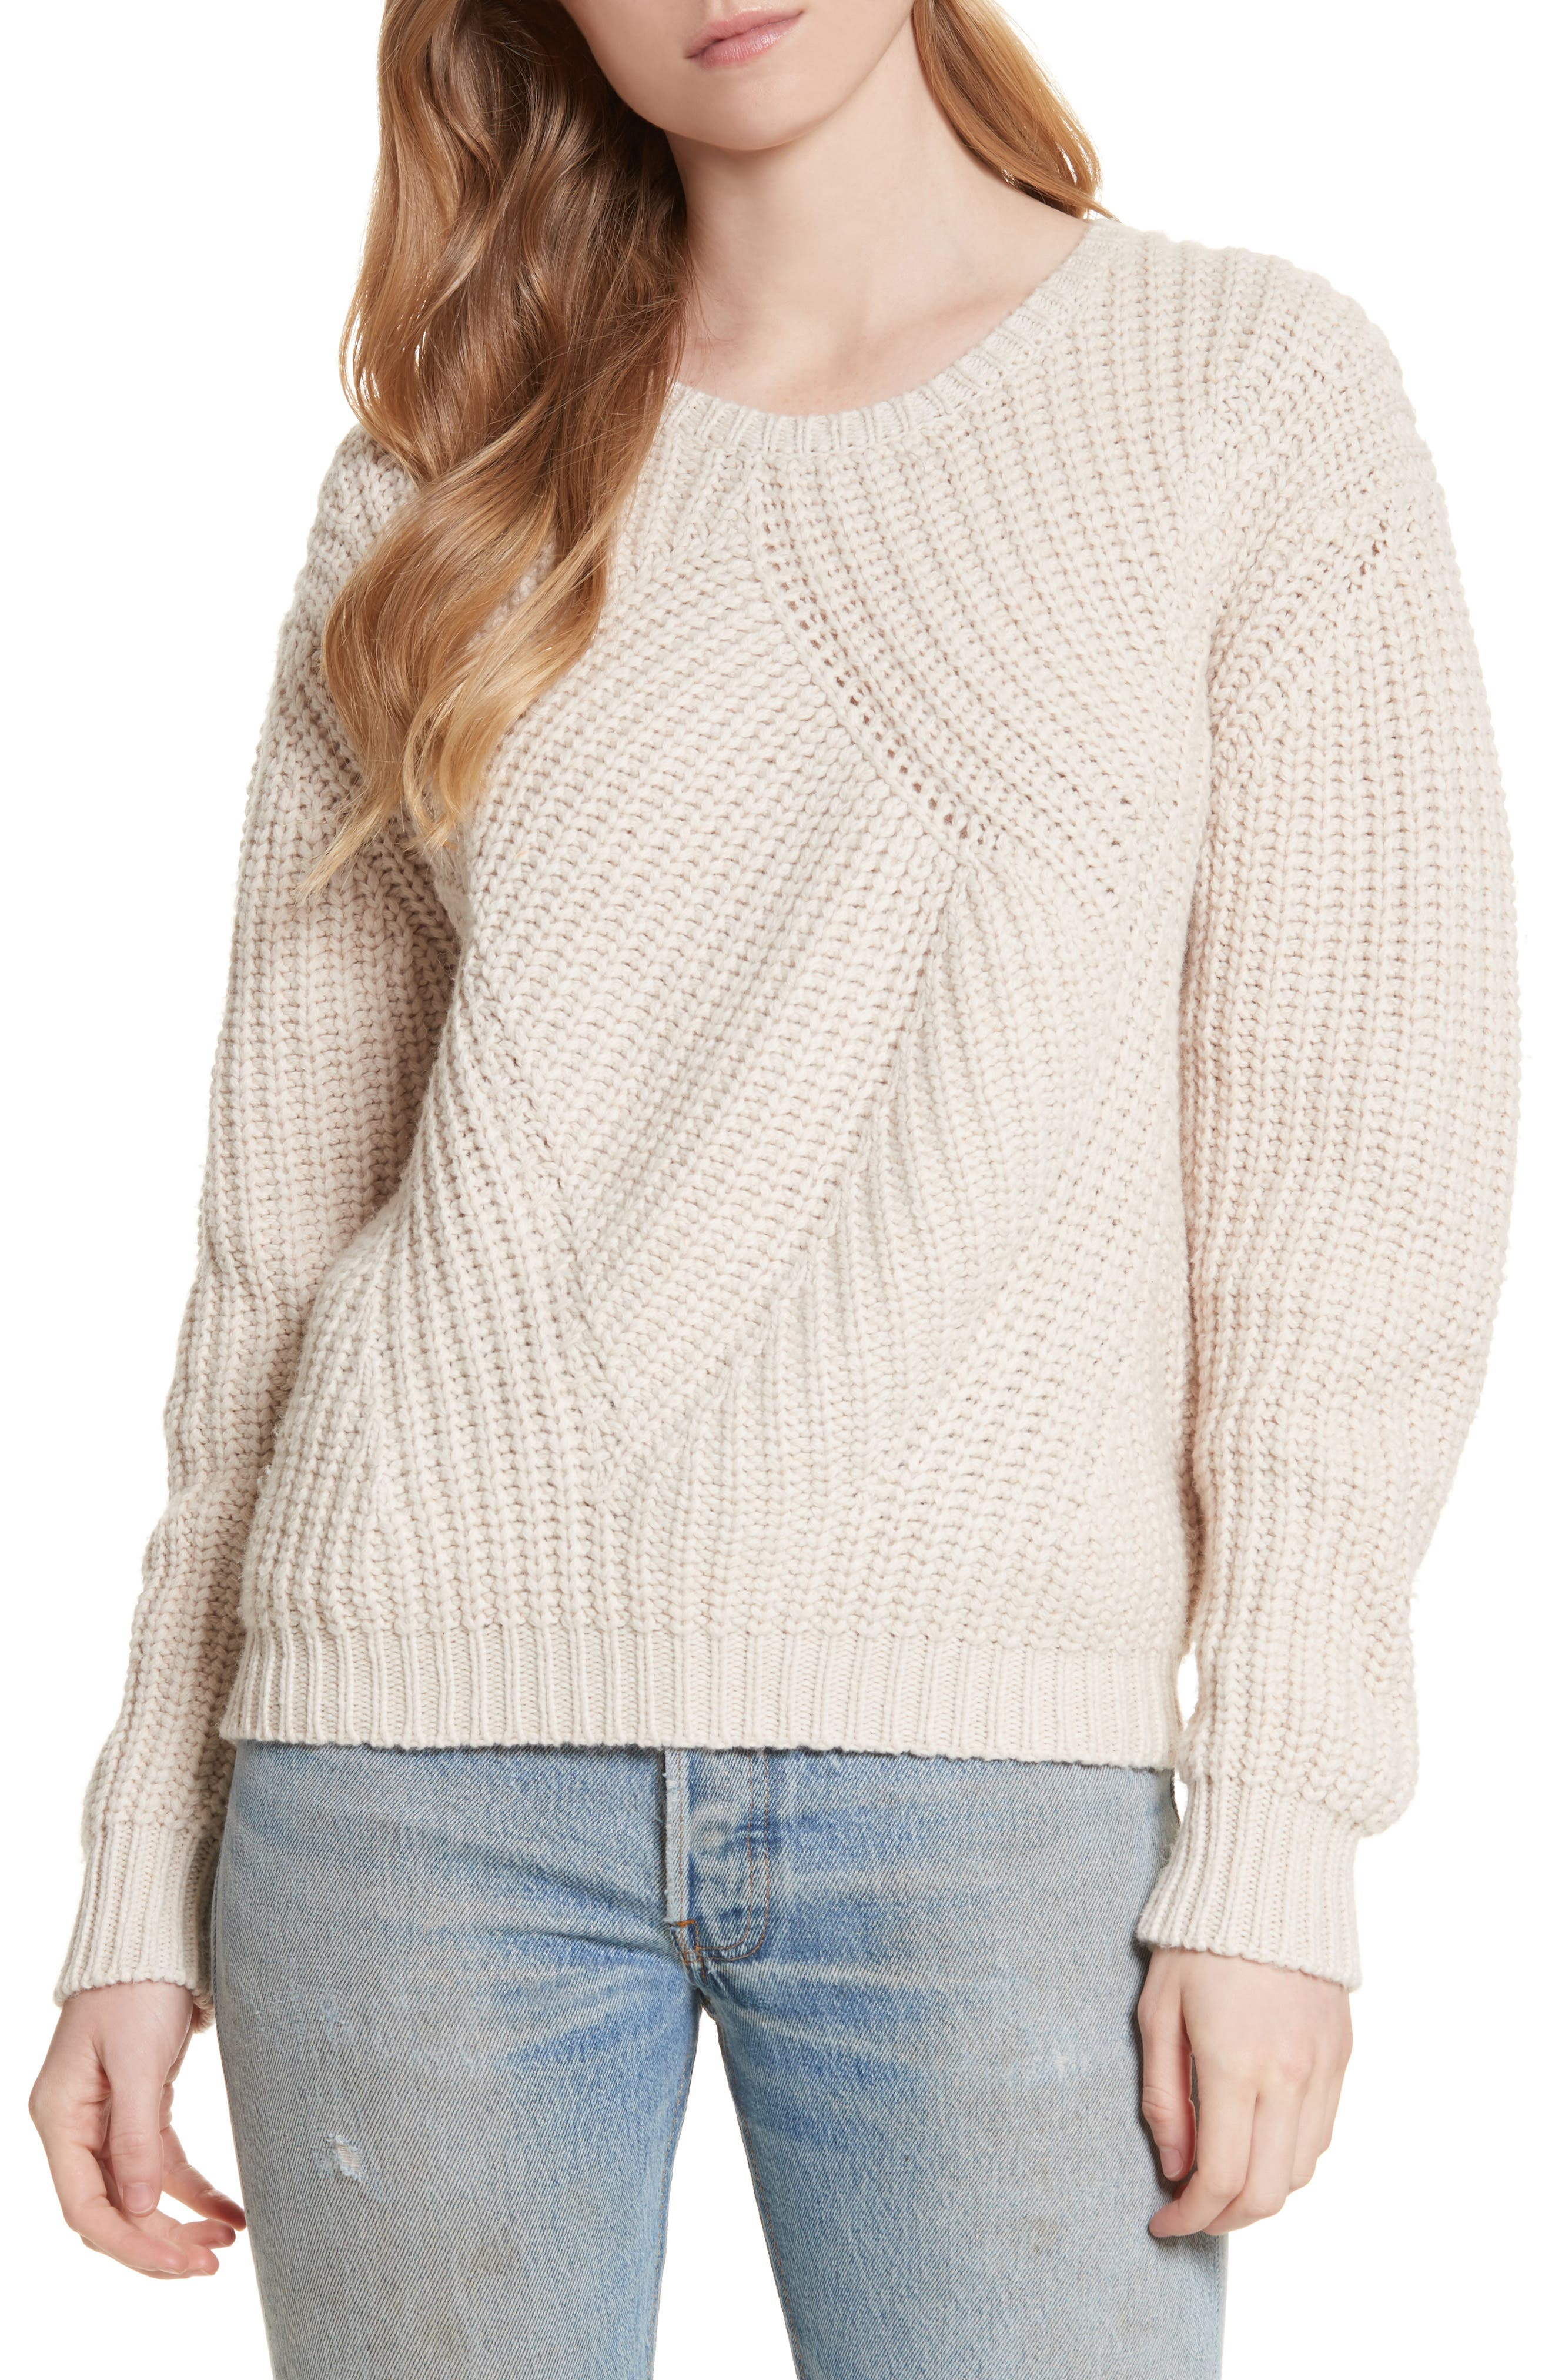 Balenne Sweater,                             Main thumbnail 1, color,                             277